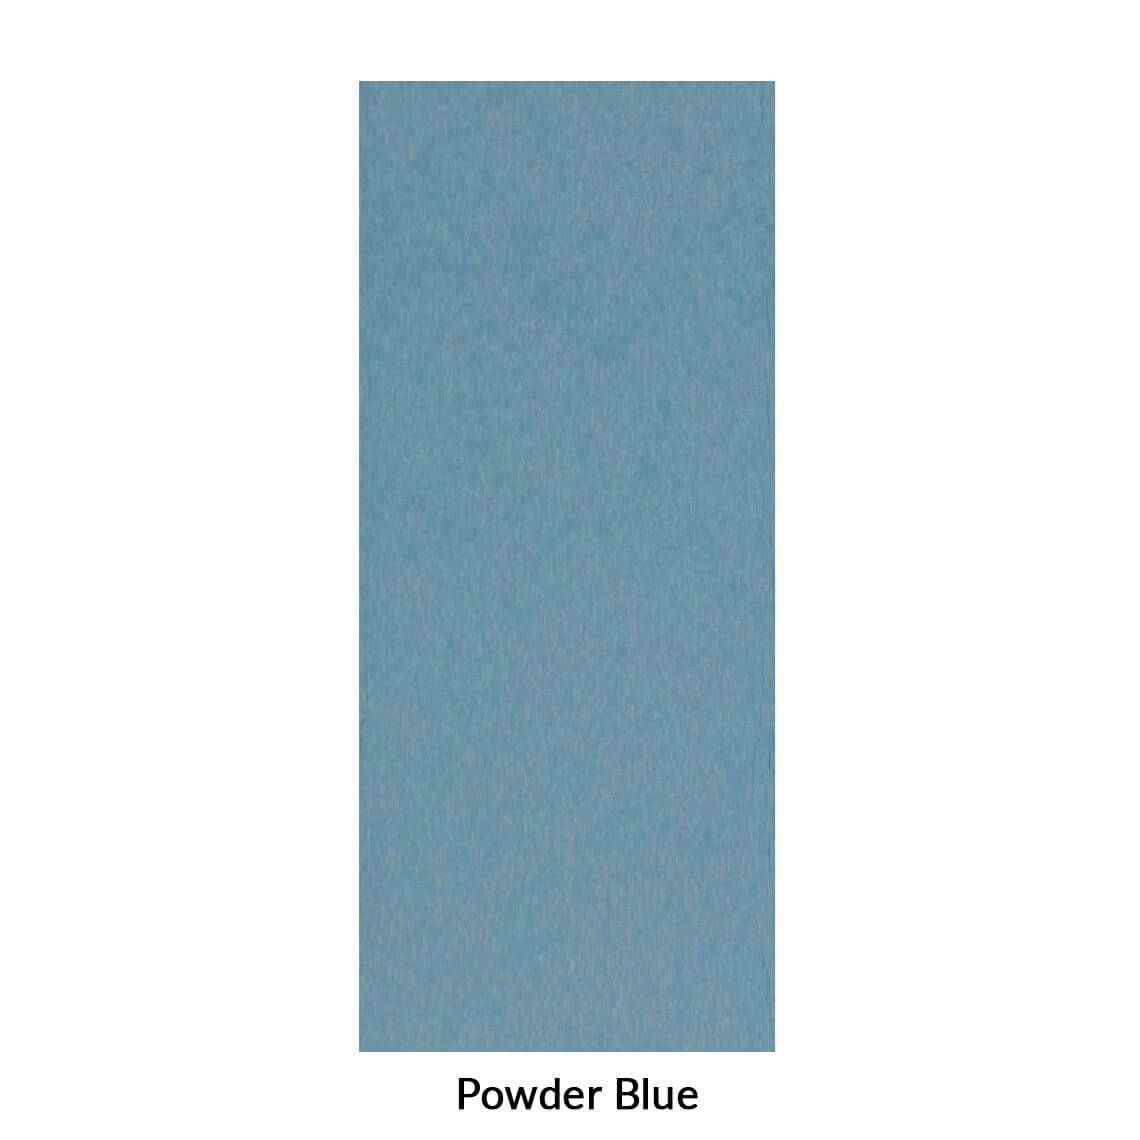 16.-powder-blue.jpg